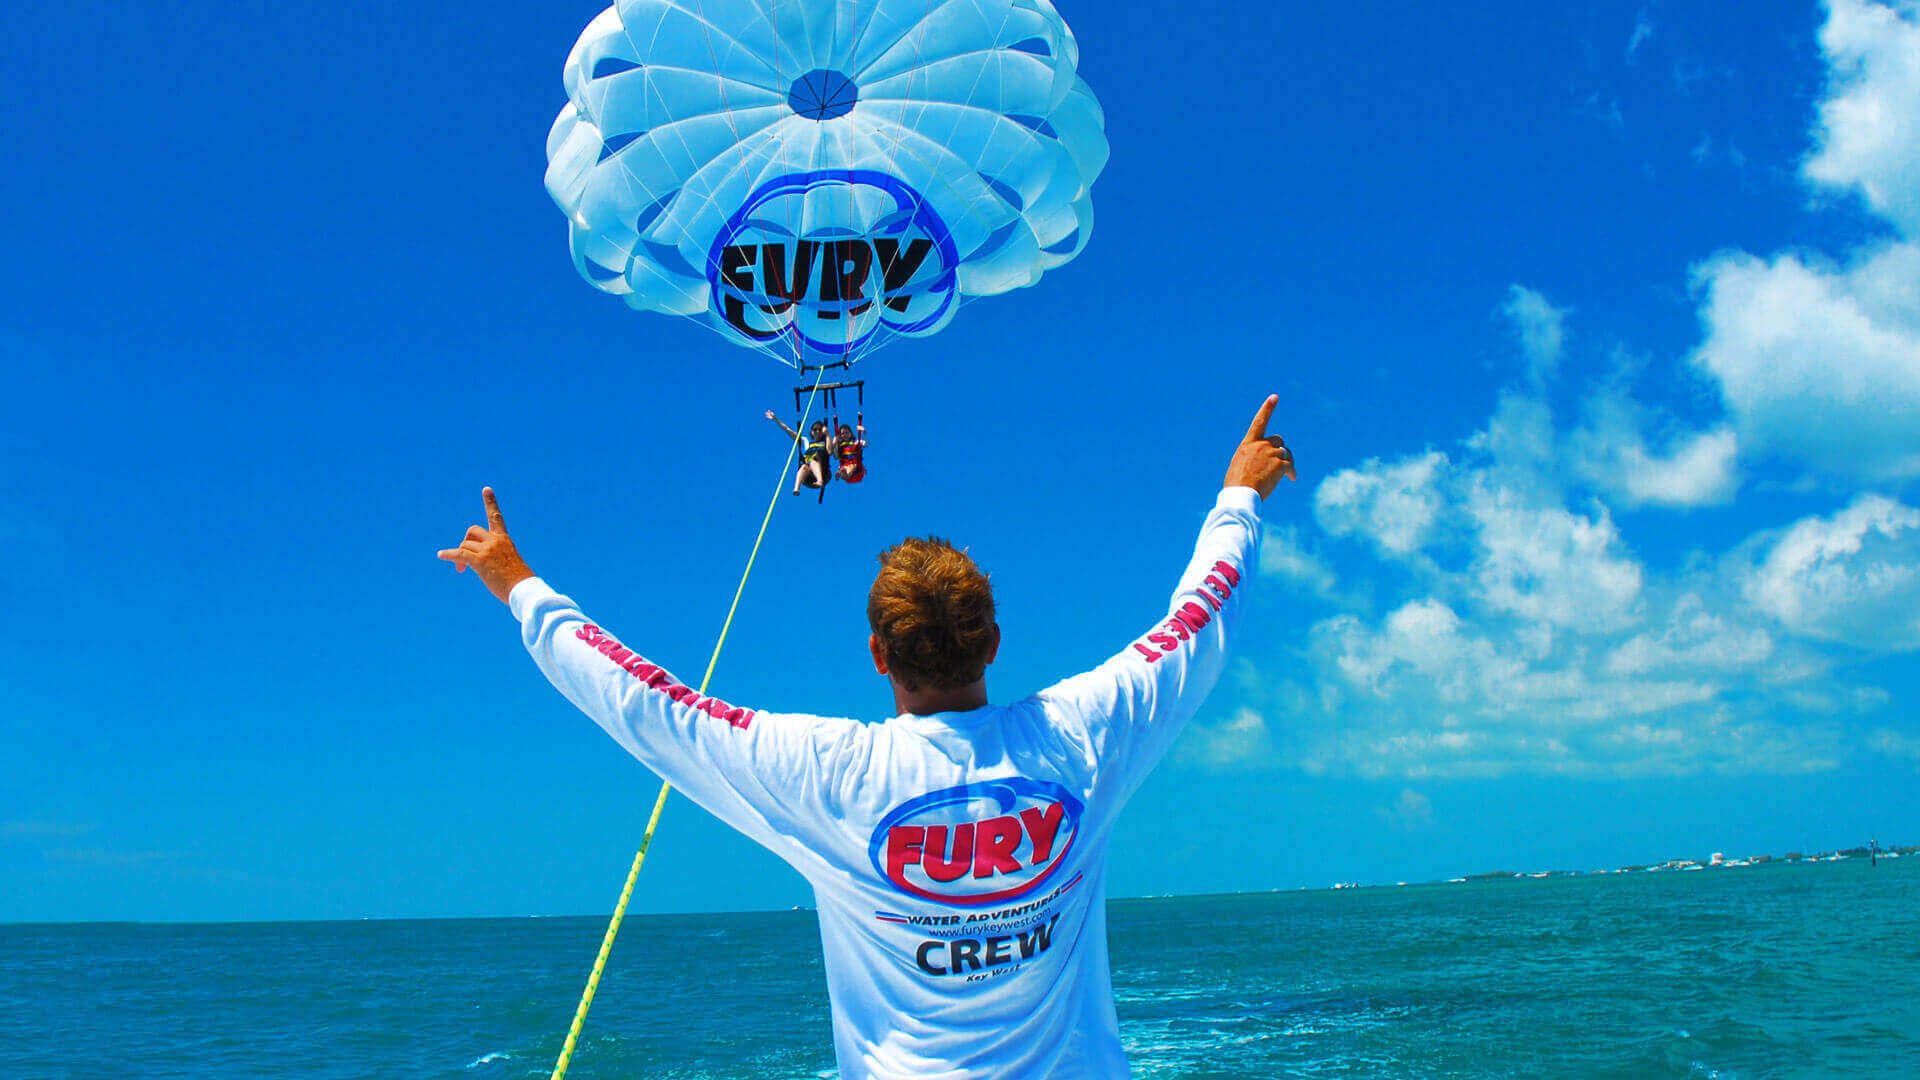 parasailing in key west with fury